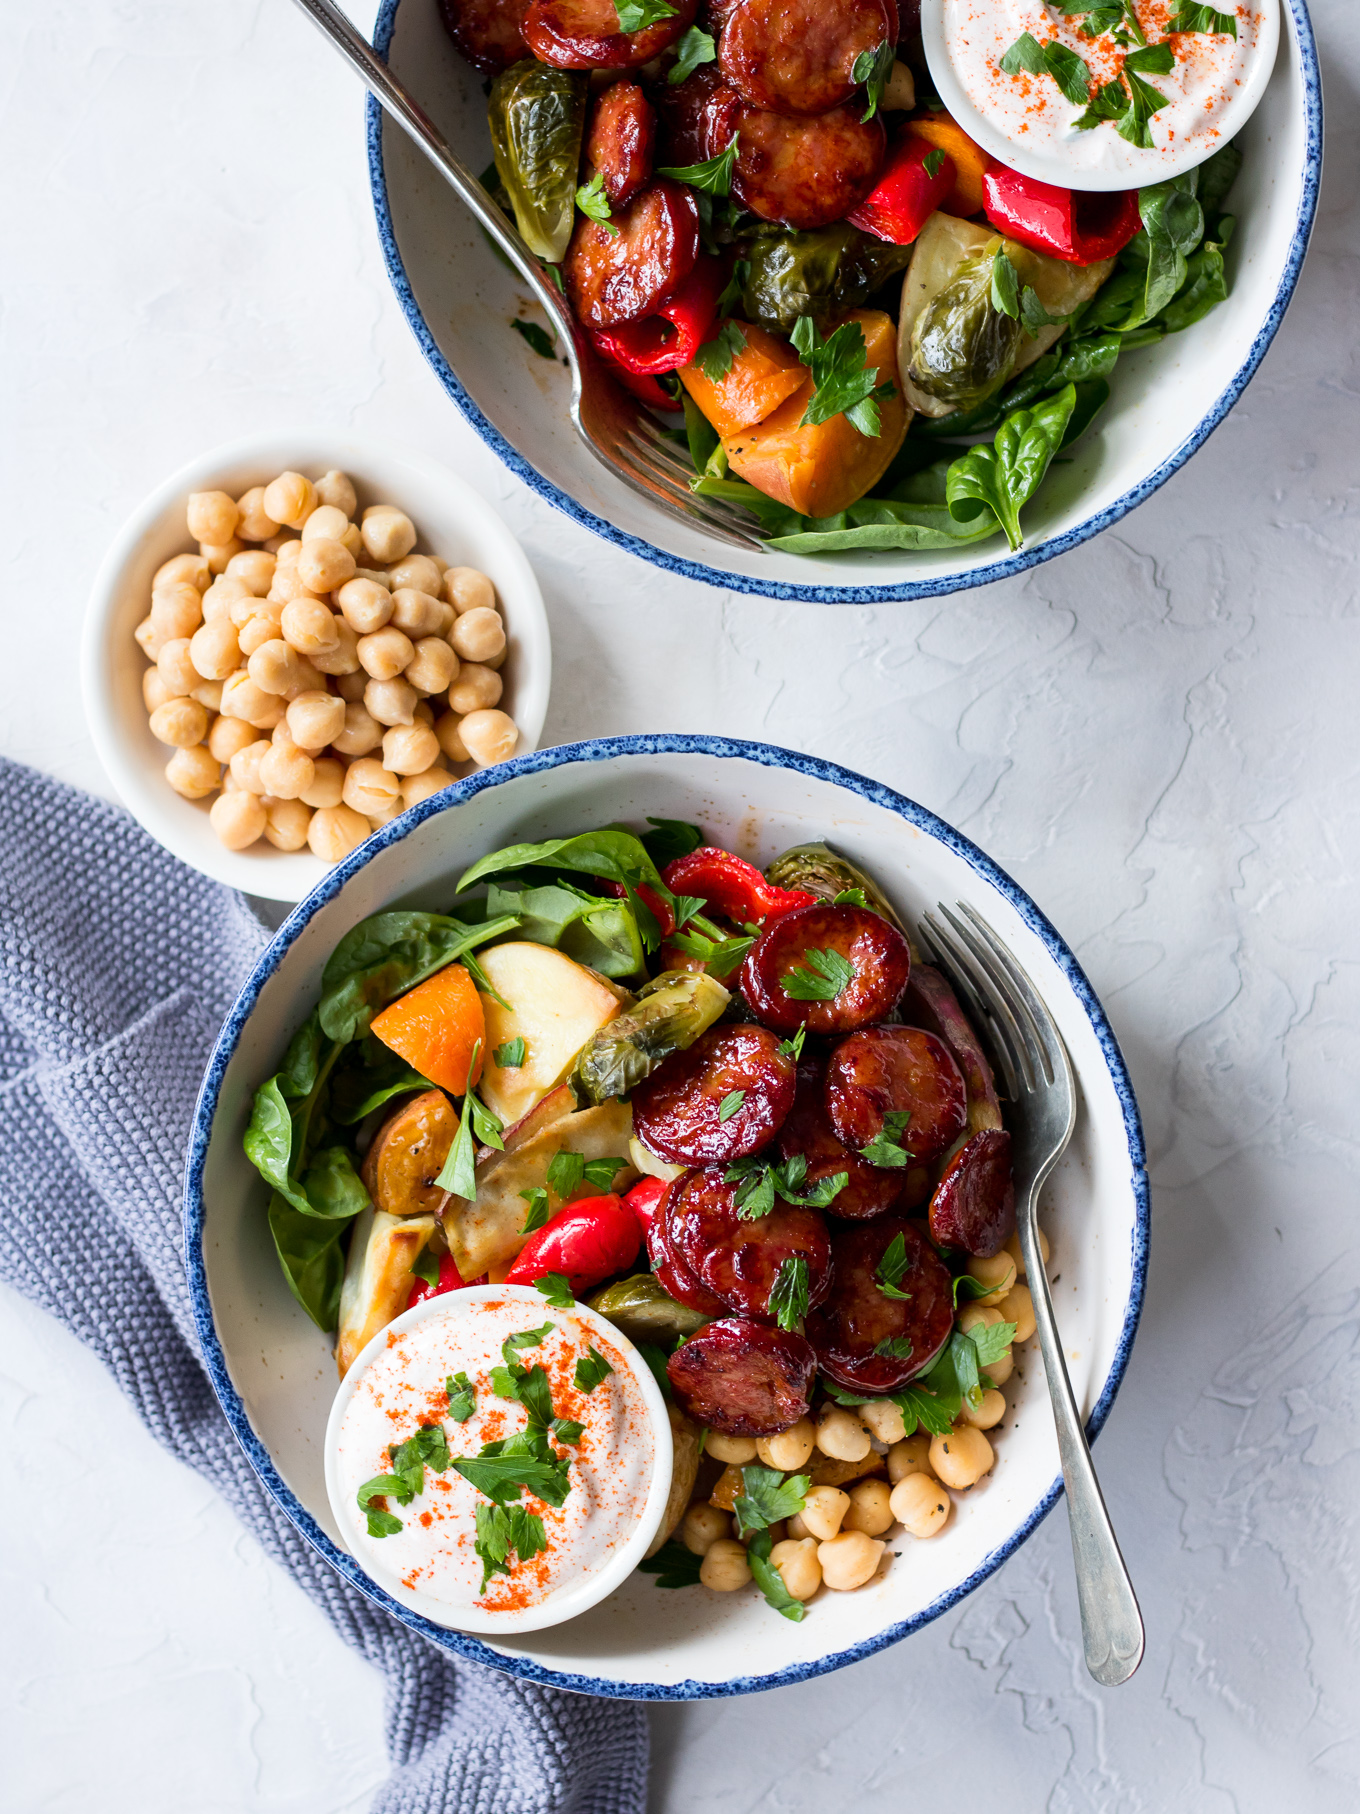 Maple Chorizo Veggie Bowls | sliced chorizo, vegetables and chickpeas with a maple glaze | Nourish Every Day